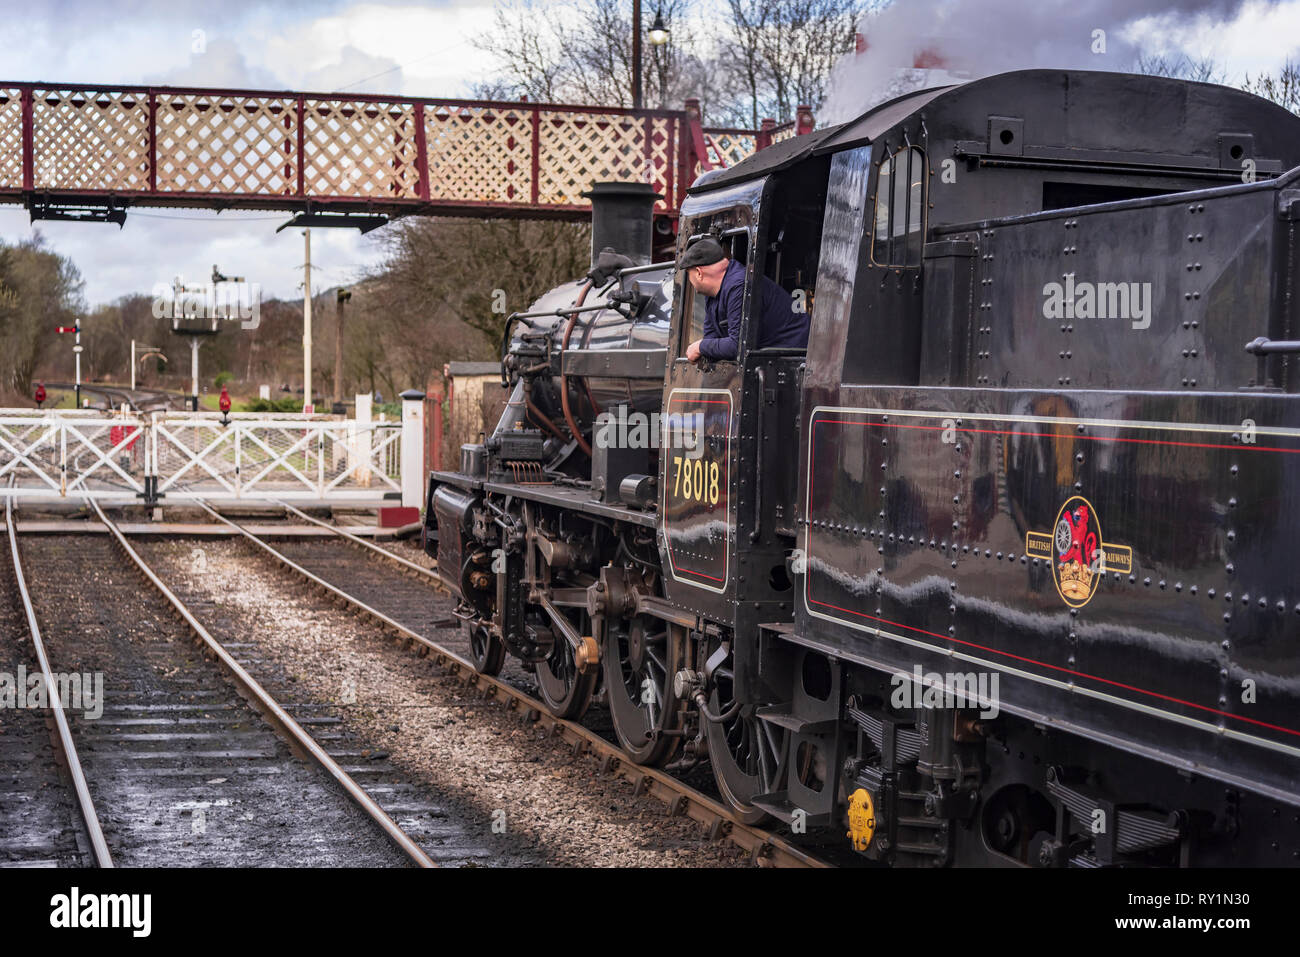 Esat Lancashire railway Spring steam gala 2019. 78018 is a BR Standard Class 2MT 2-6-0 Stock Photo